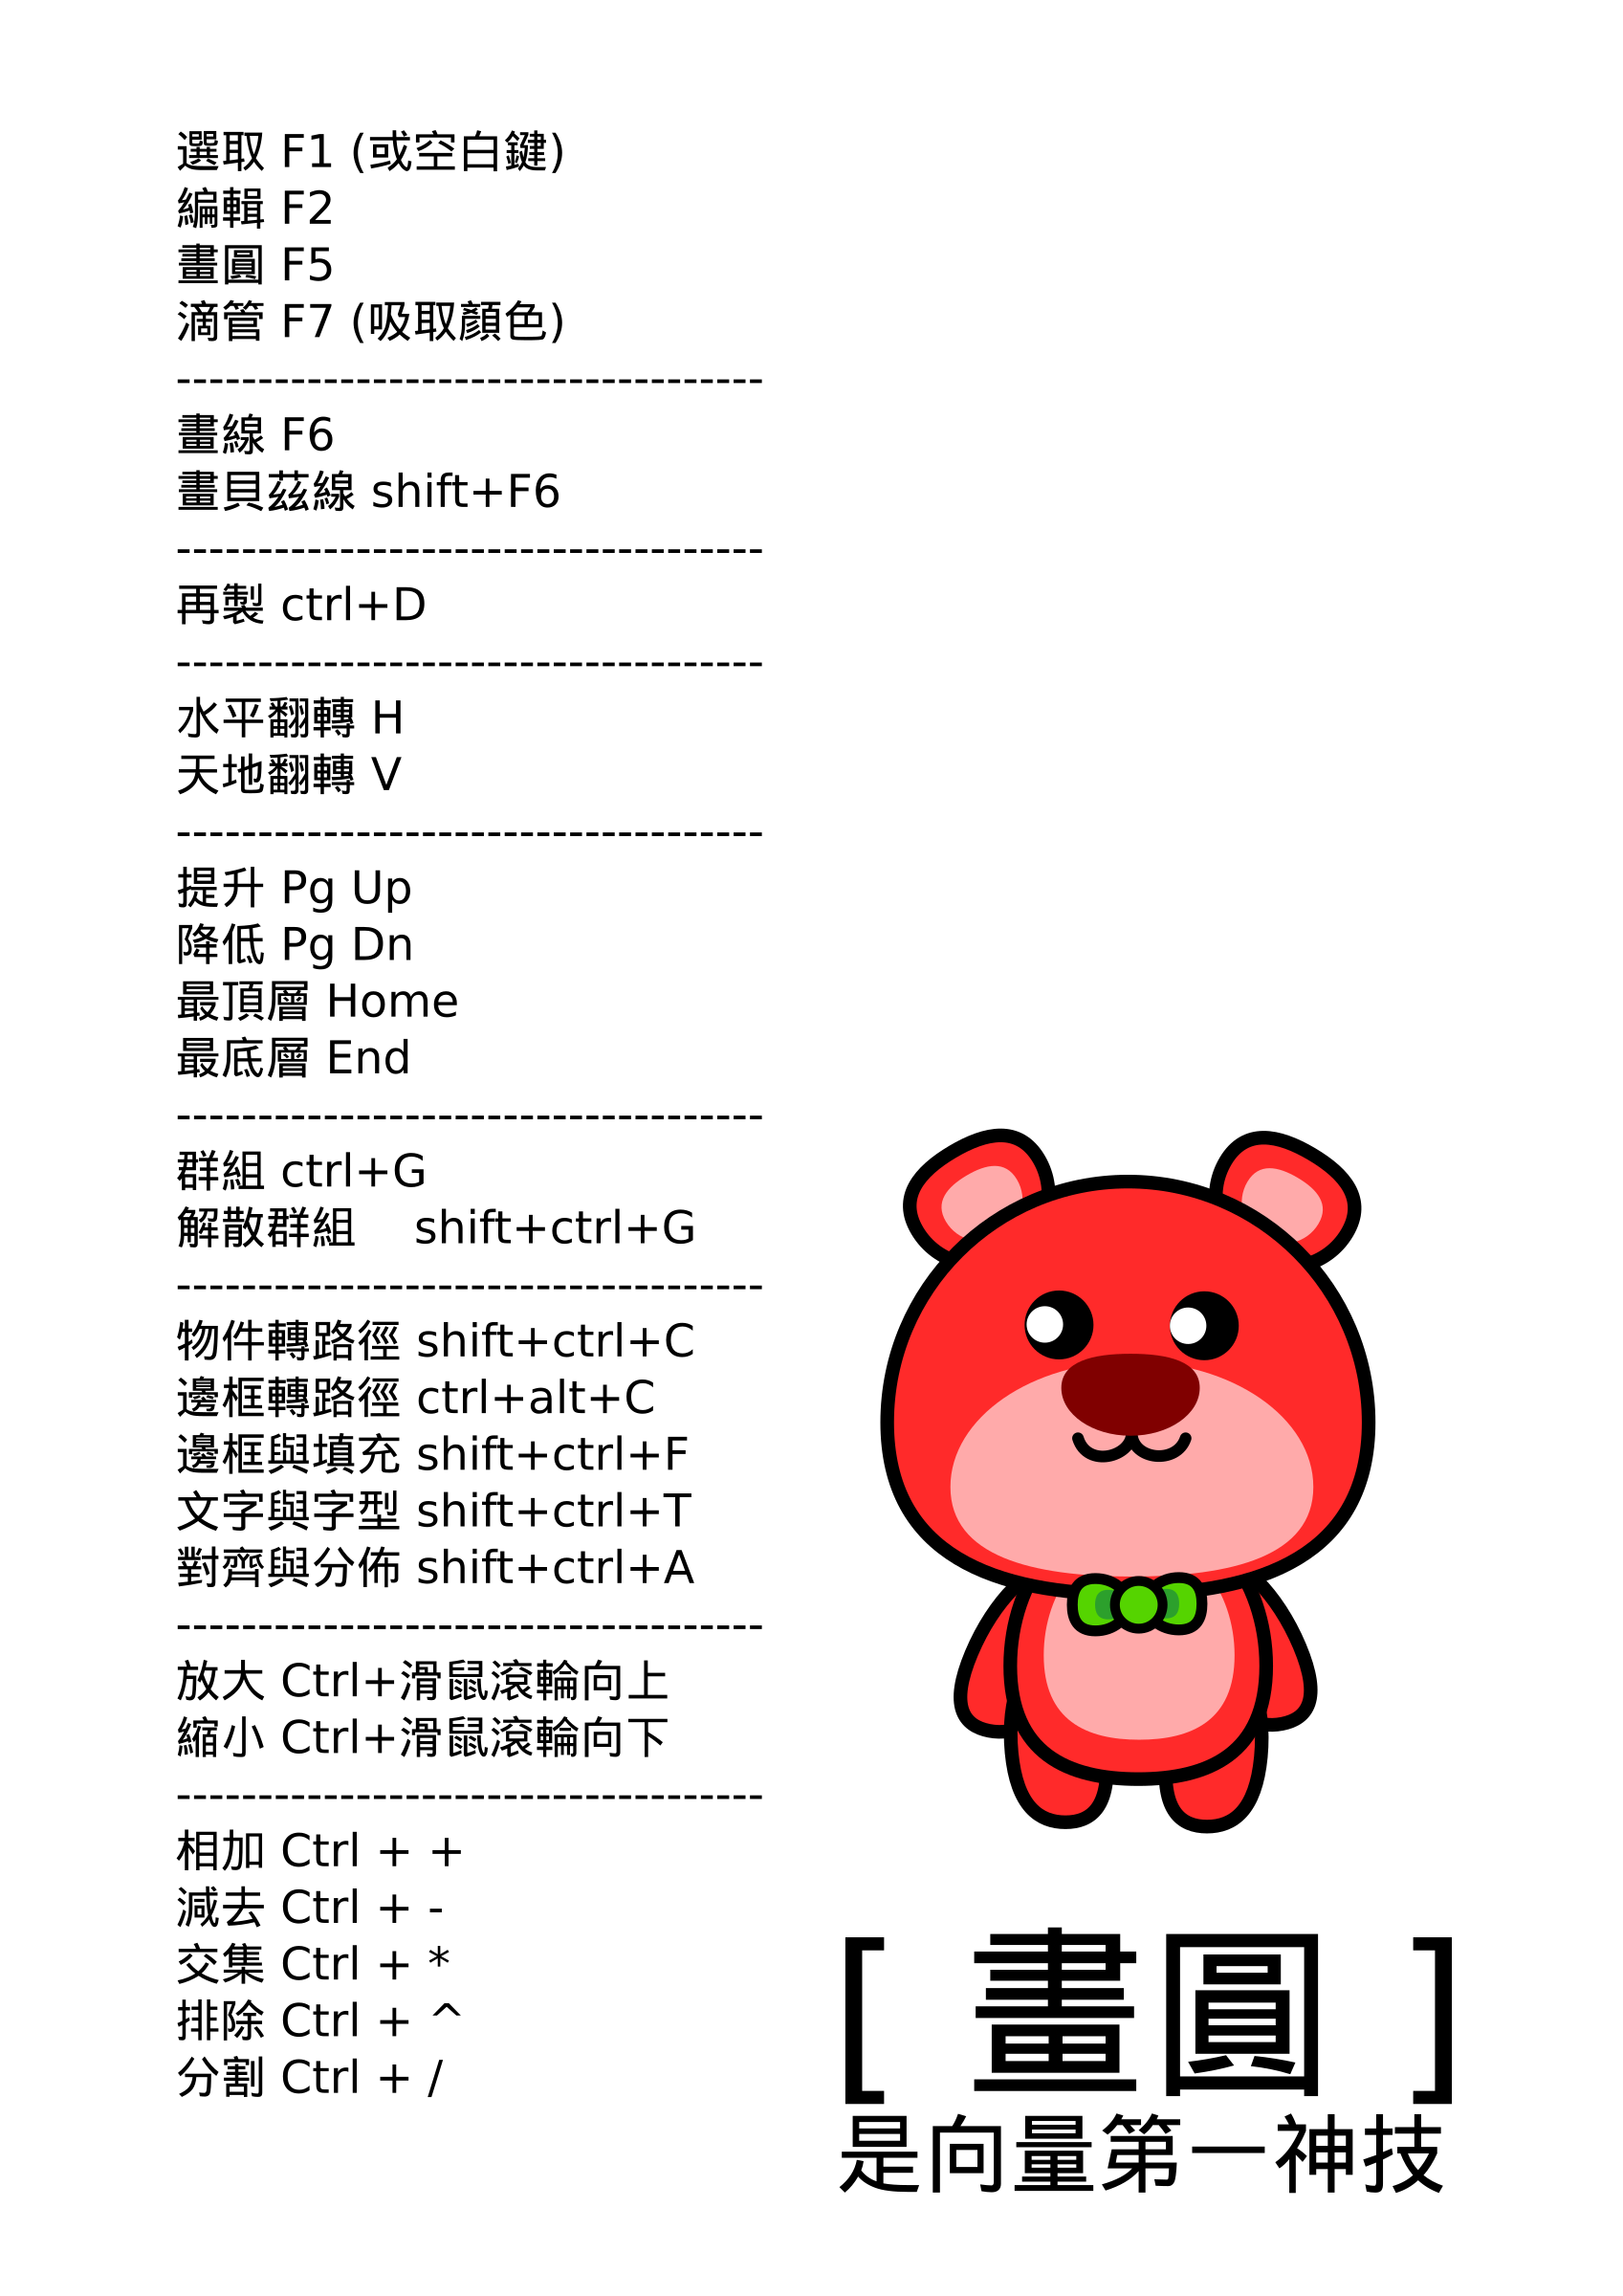 https://openclipart.org/image/2400px/svg_to_png/220388/cherrybear.png